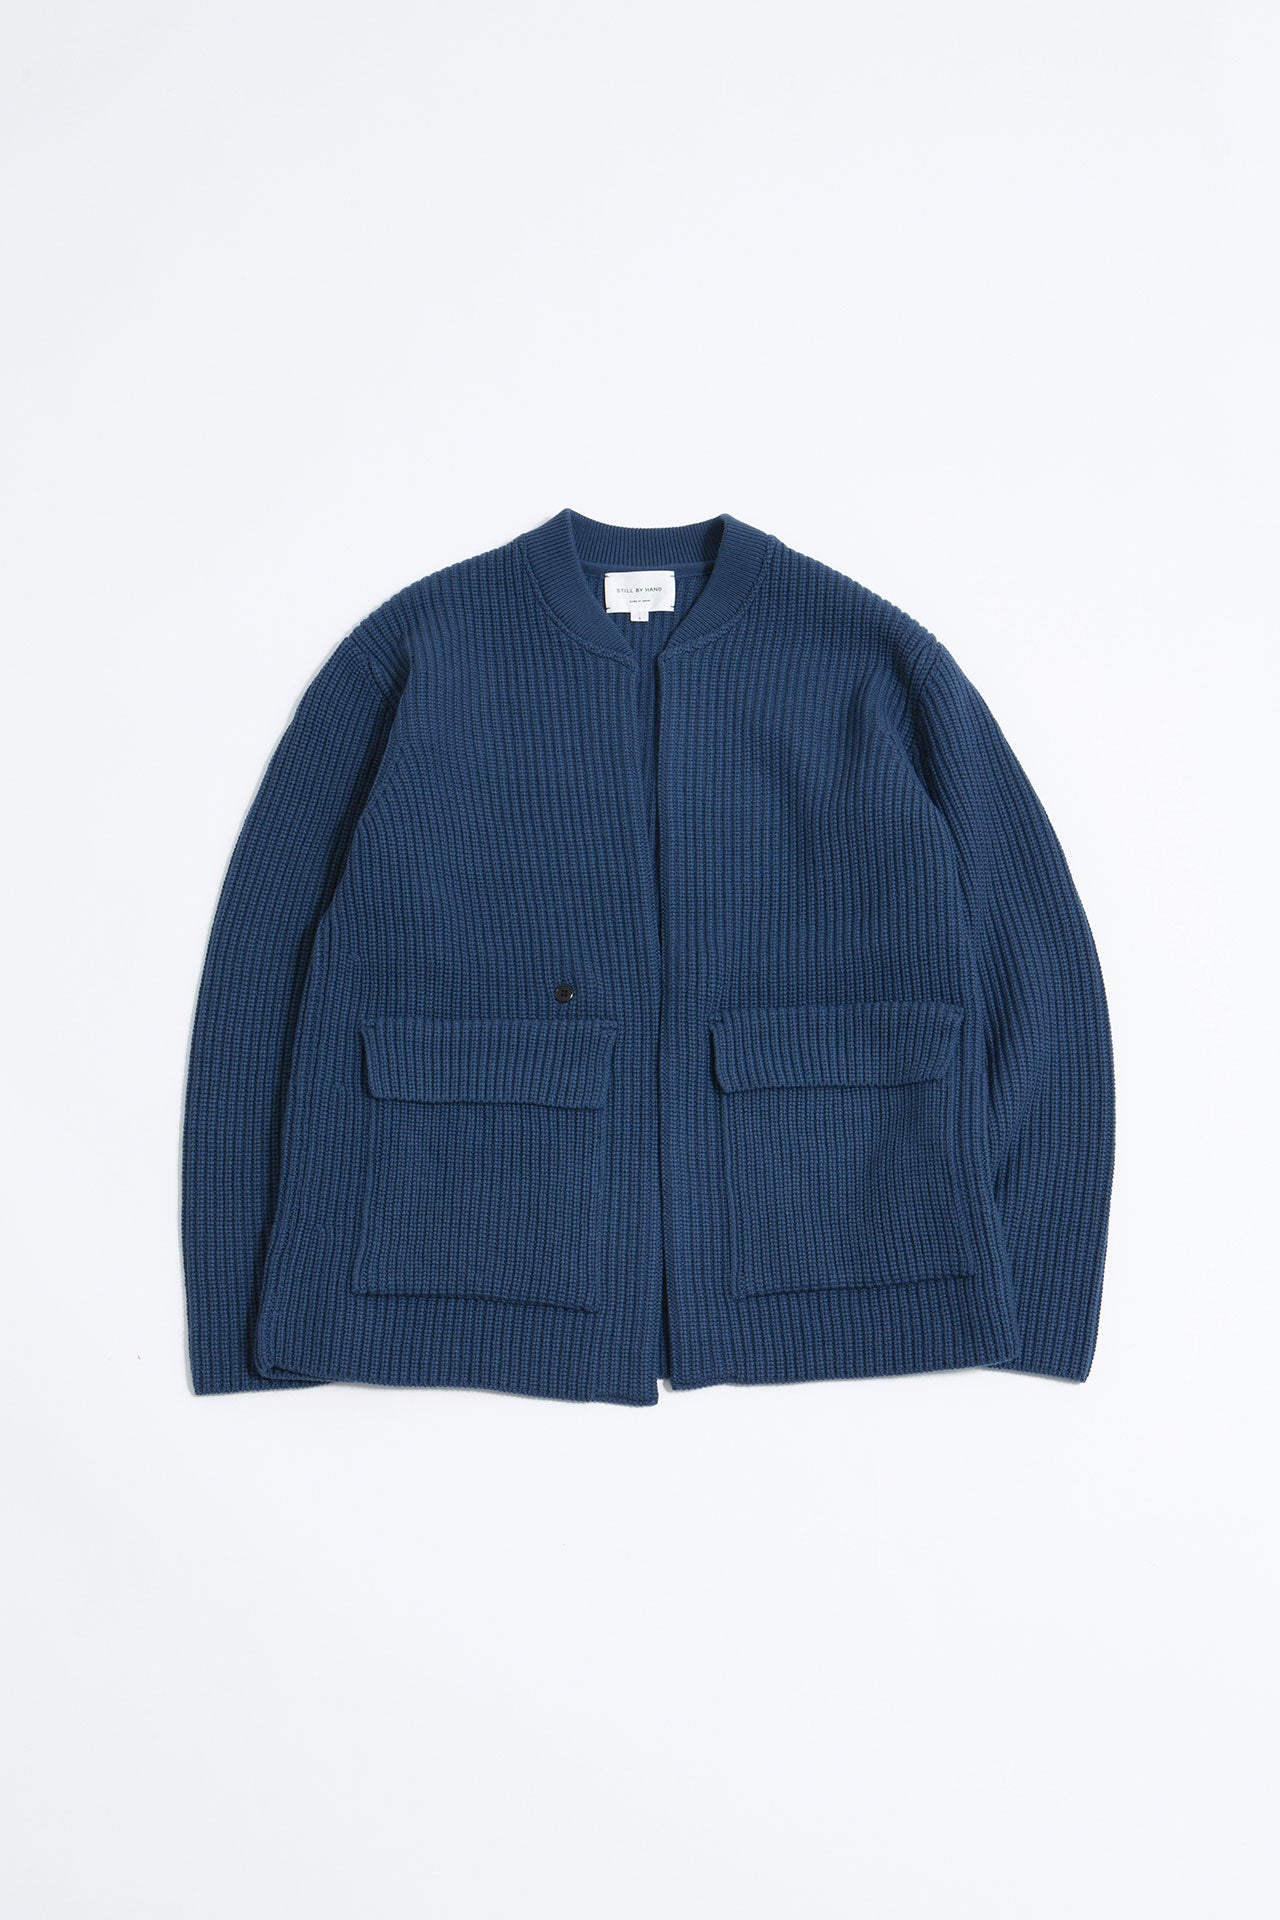 1B knit blouson blue